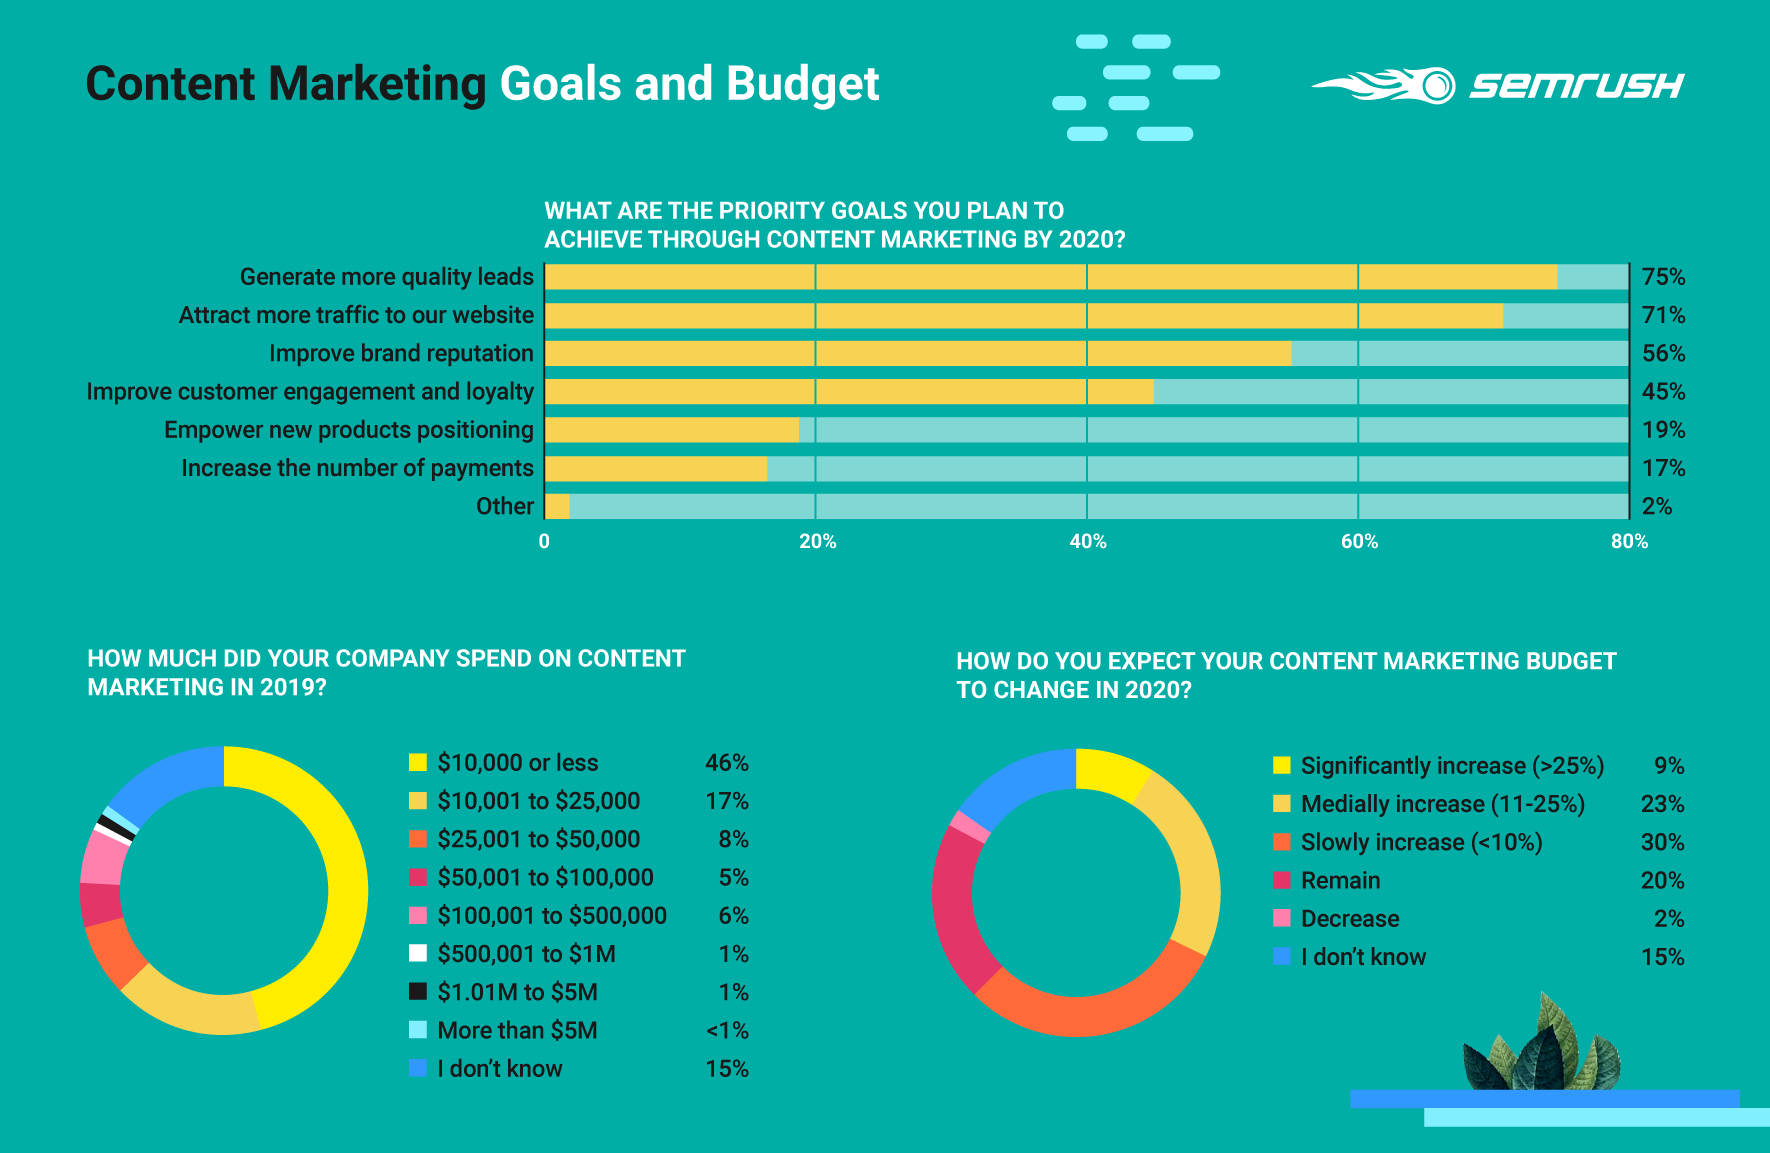 Content Marketing Goals and Budgets Survey results